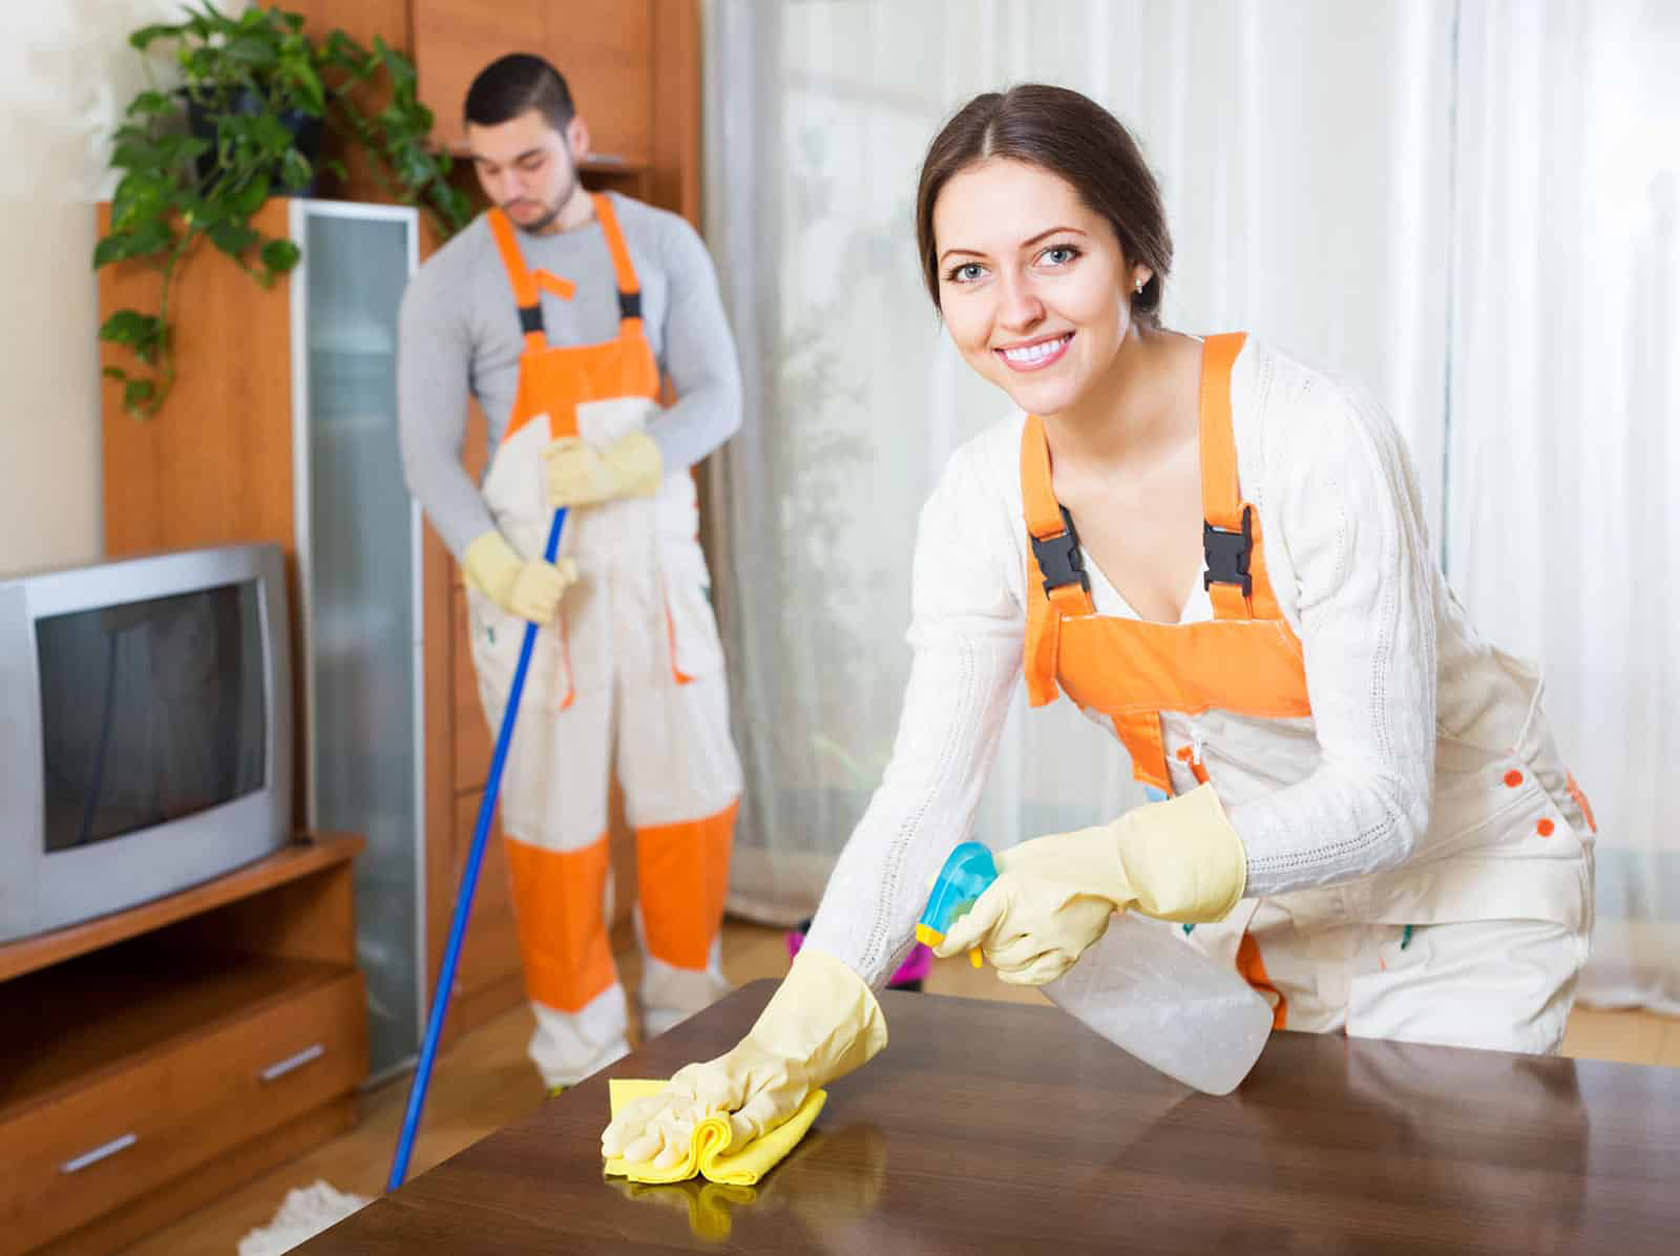 Professionally Cleaning Service